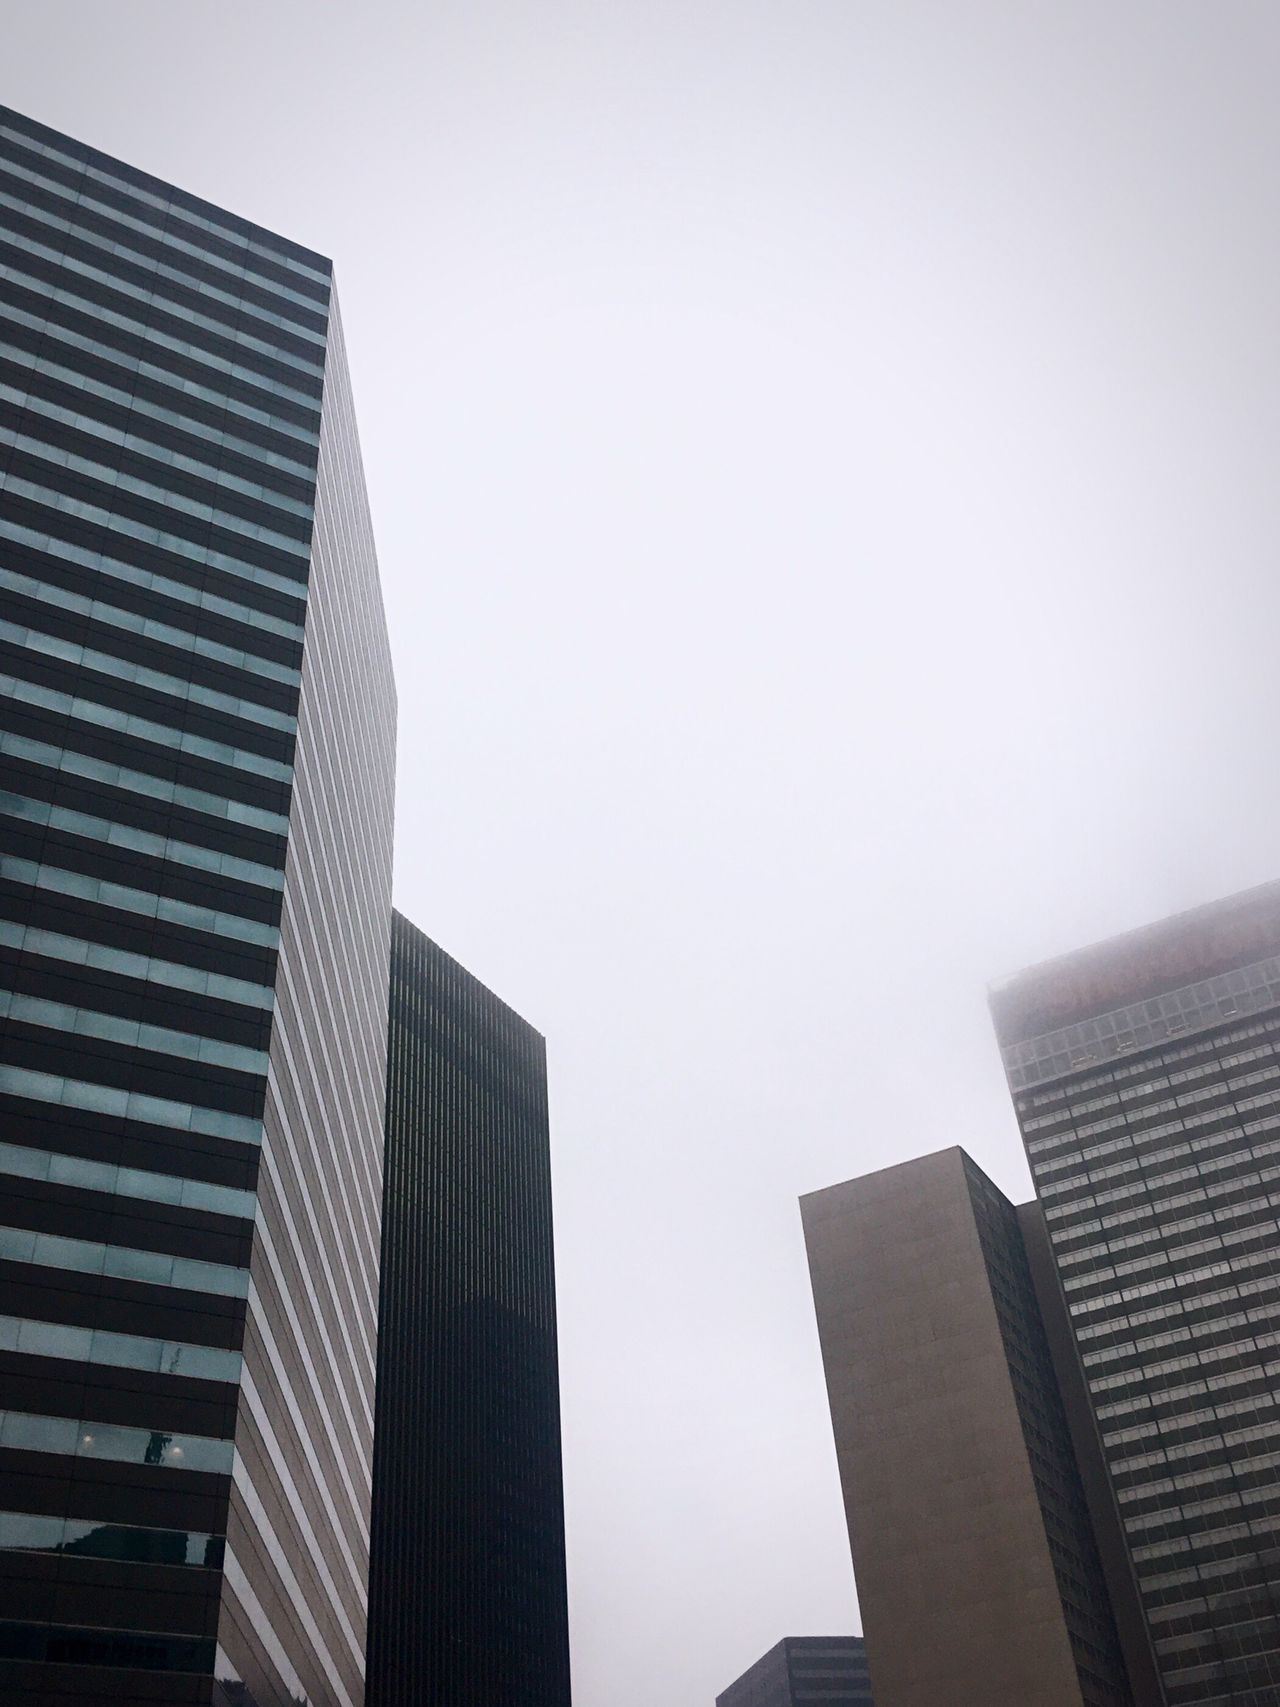 Looking up at some buildings Building Exterior Architecture Built Structure City Low Angle View Modern Skyscraper Clear Sky No People Outdoors Day Tall Sky Office Block (null)Hello World Downtown Check This Out Low Angle View Lookingup Cool Design Shapes EyeEm Best Shots Foggy Traveling Home For The Holidays